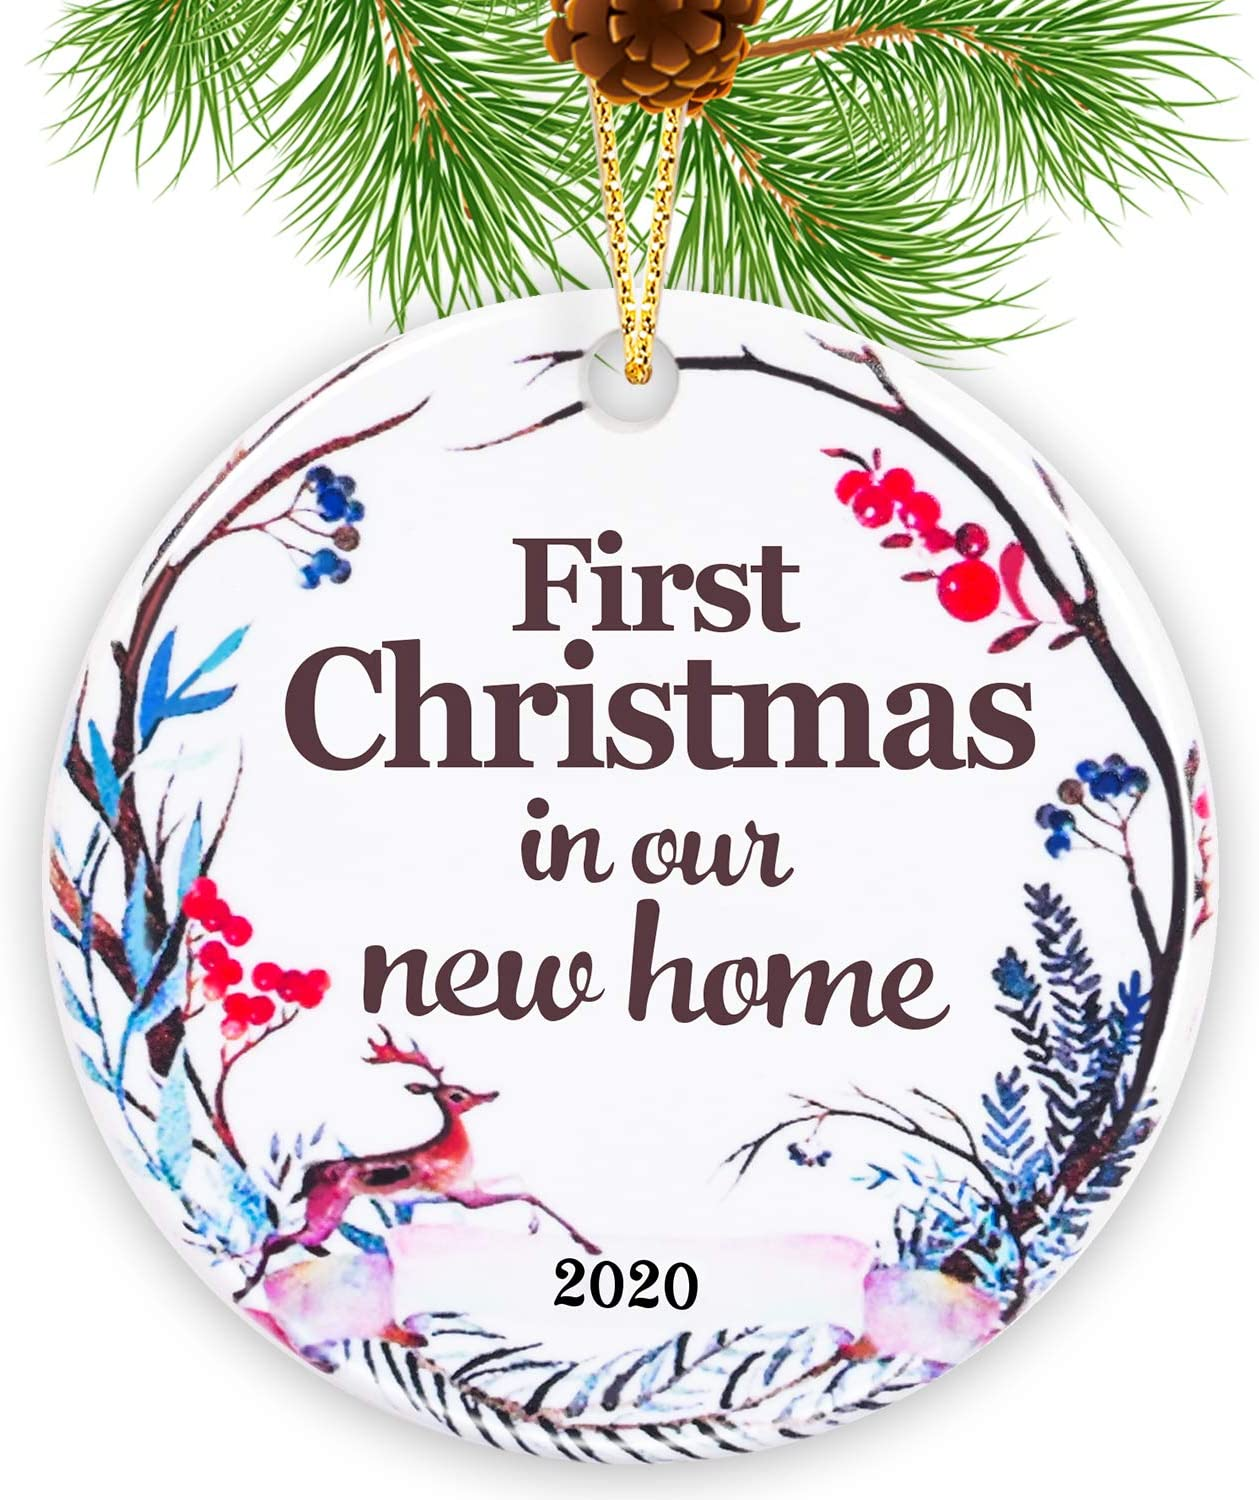 Touber 2020 Christmas Ornaments/Ceramics Christmas Tree Ornaments (First Christmas in Our New Home 2020)